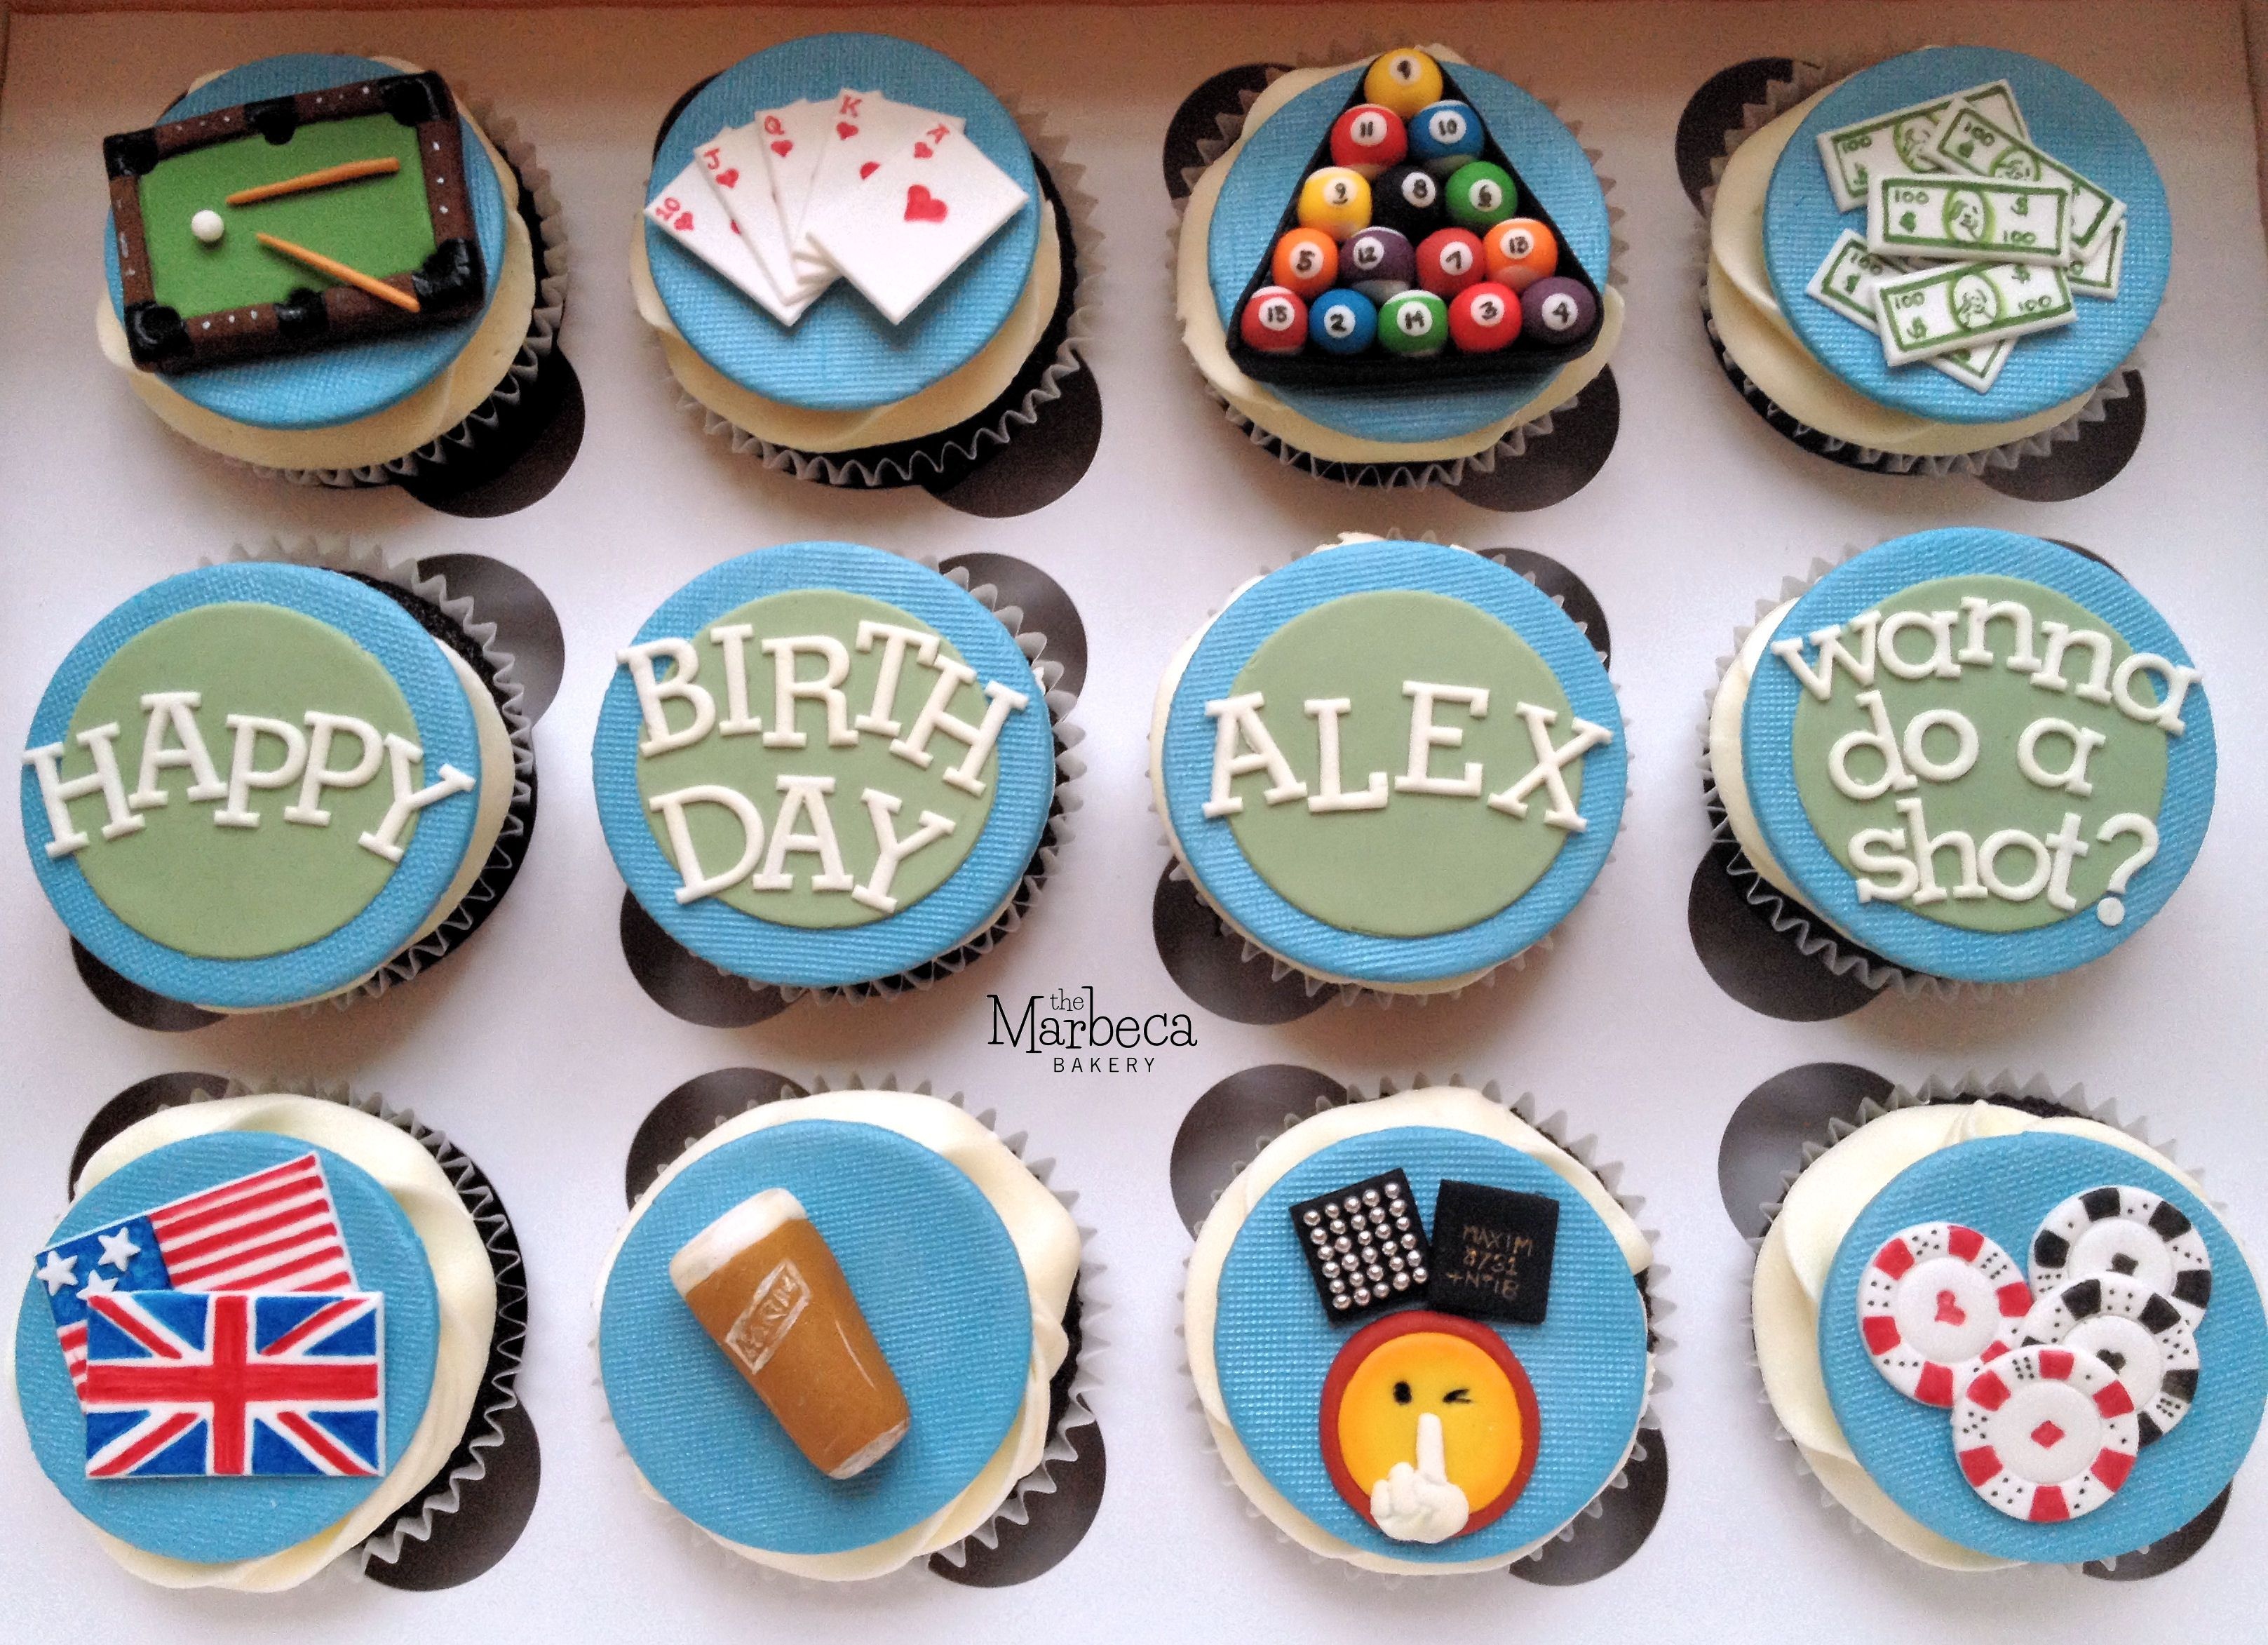 Birthday cupcakes - mixed interest